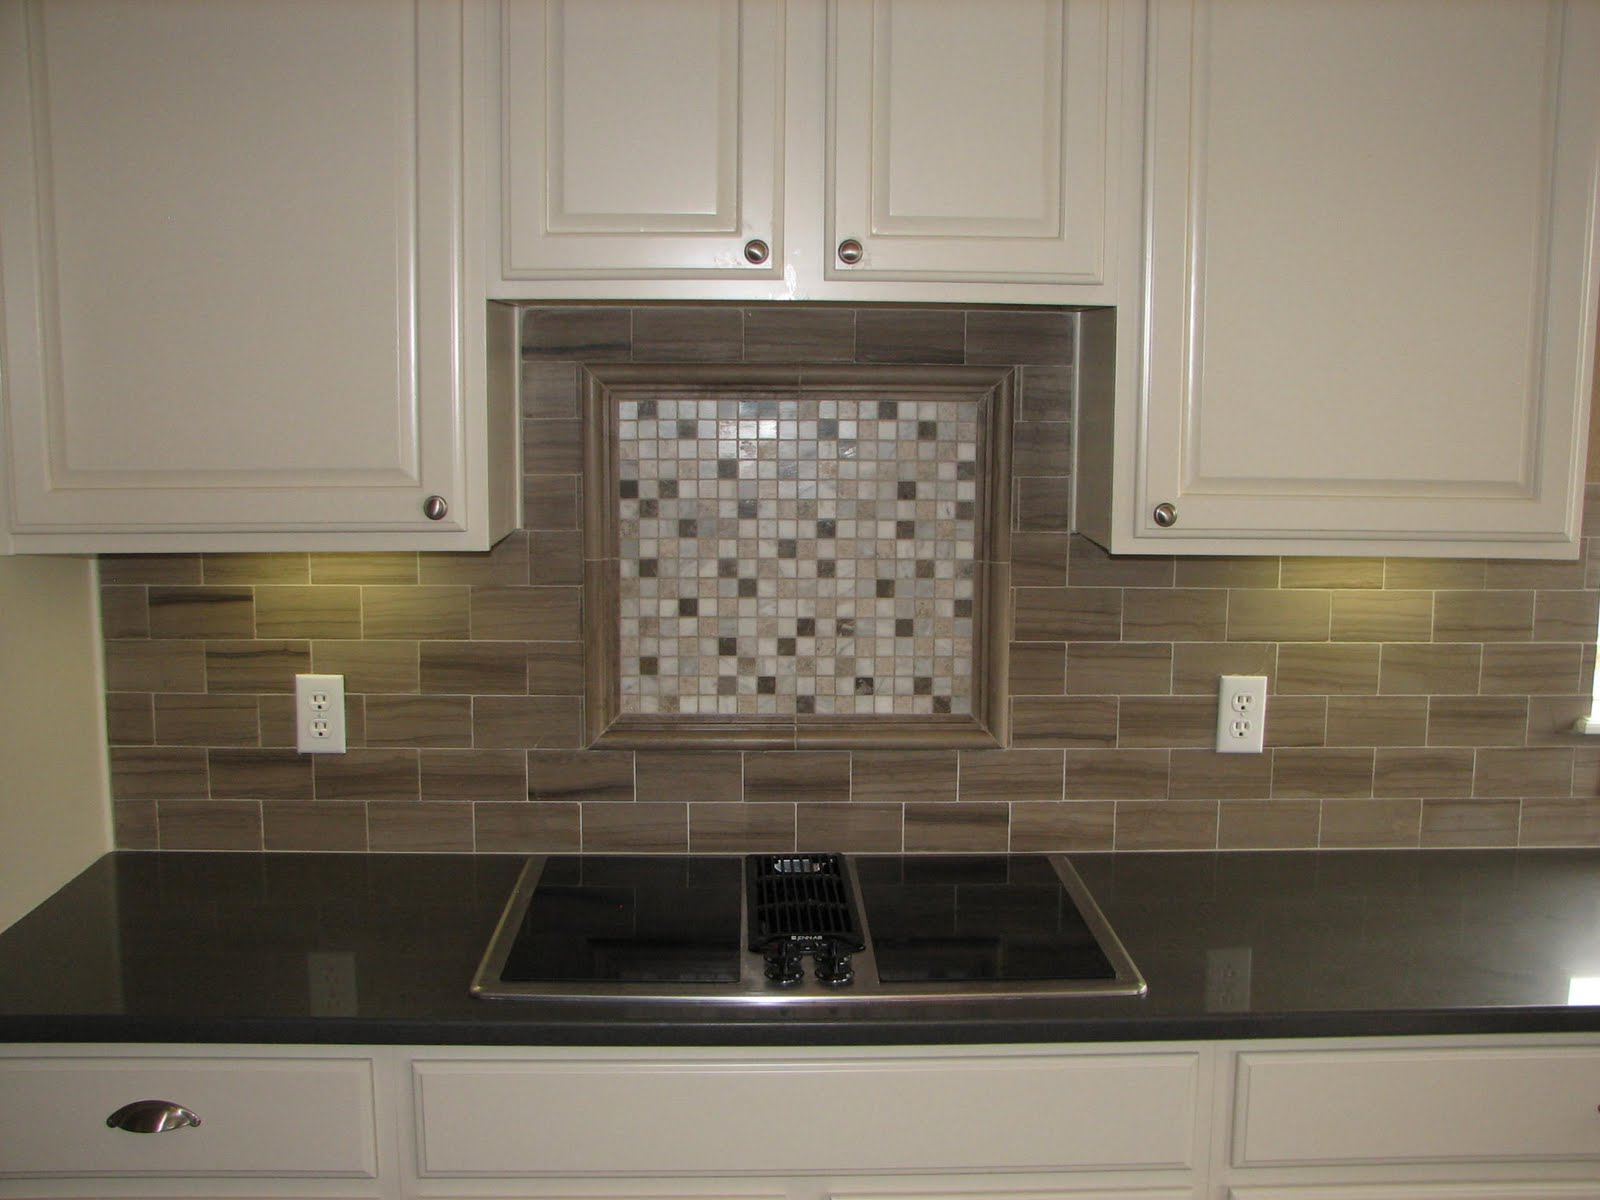 Tile Backsplash Ideas for Quartz Countertops-3.bp.blogspot.com